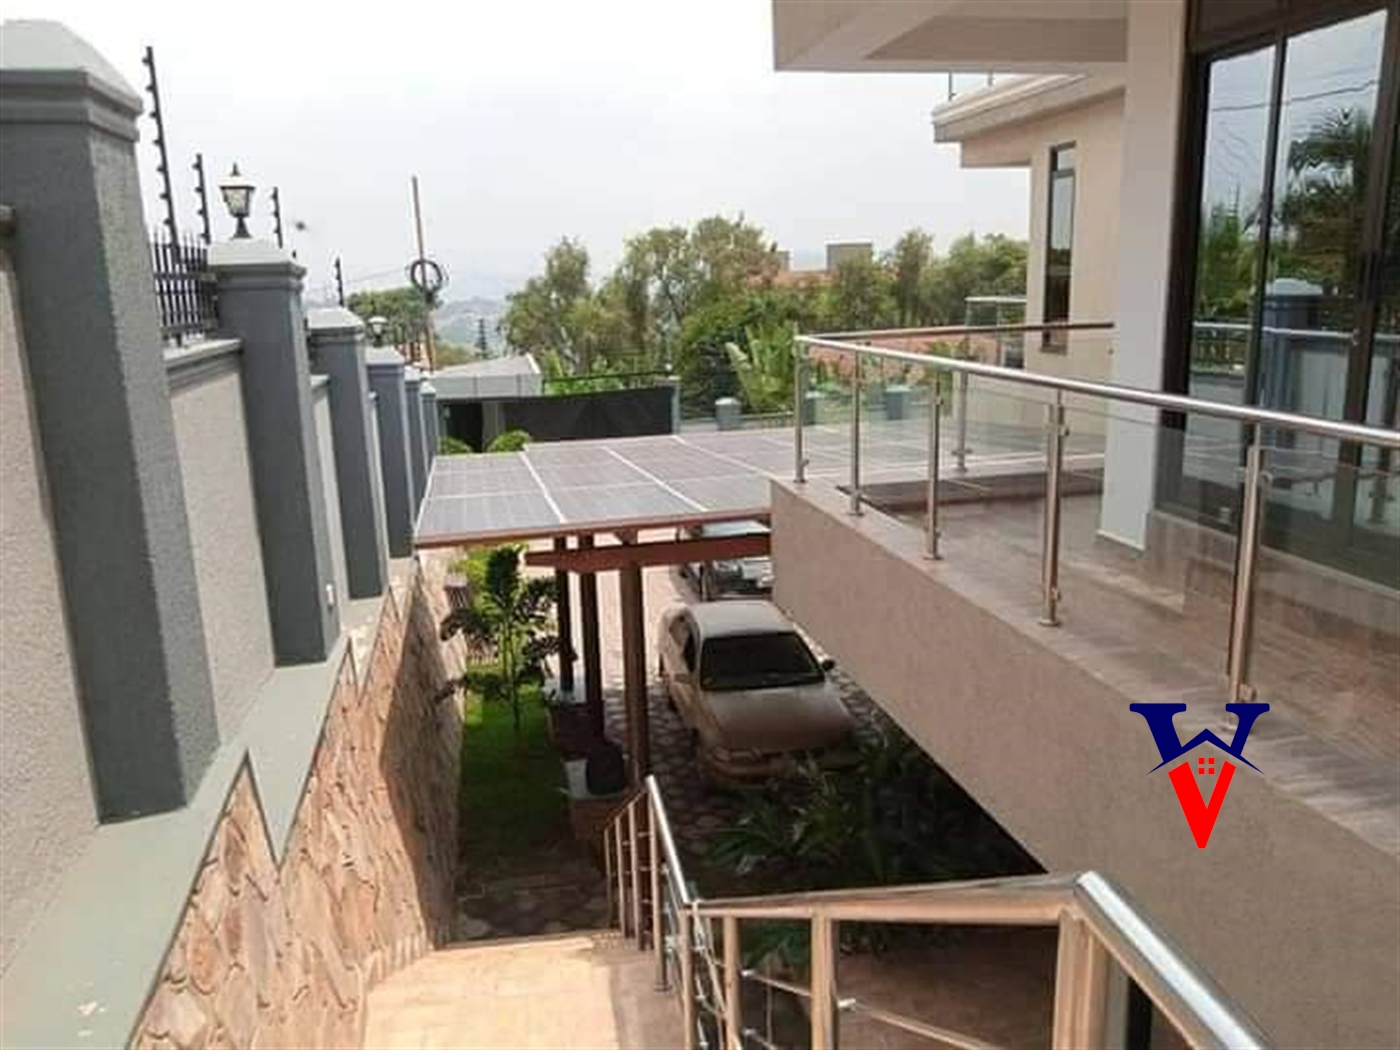 Storeyed house for sale in Mutungo Kampala